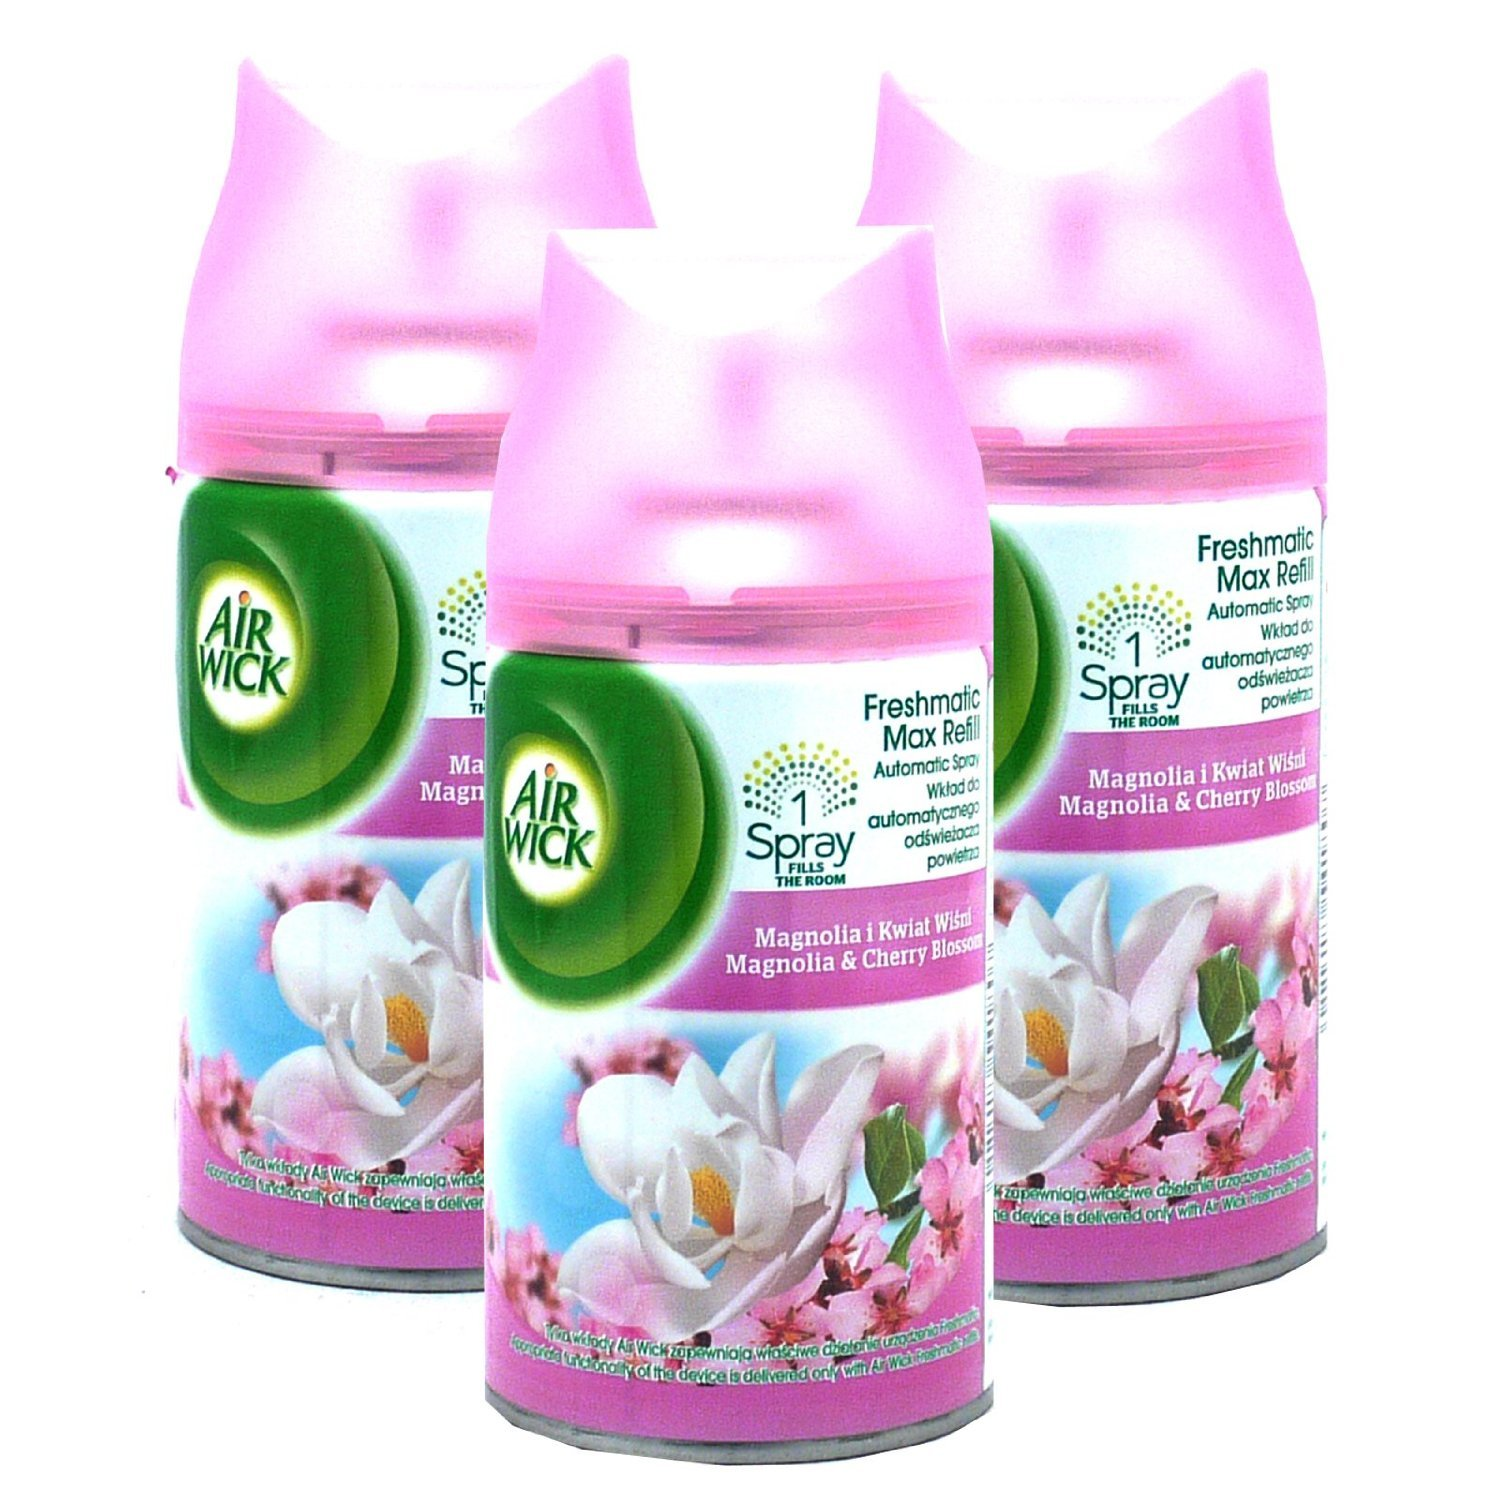 3 x Air Wick Freshmatic Max Refills 250ml - Magnolia & Cherry Blossom